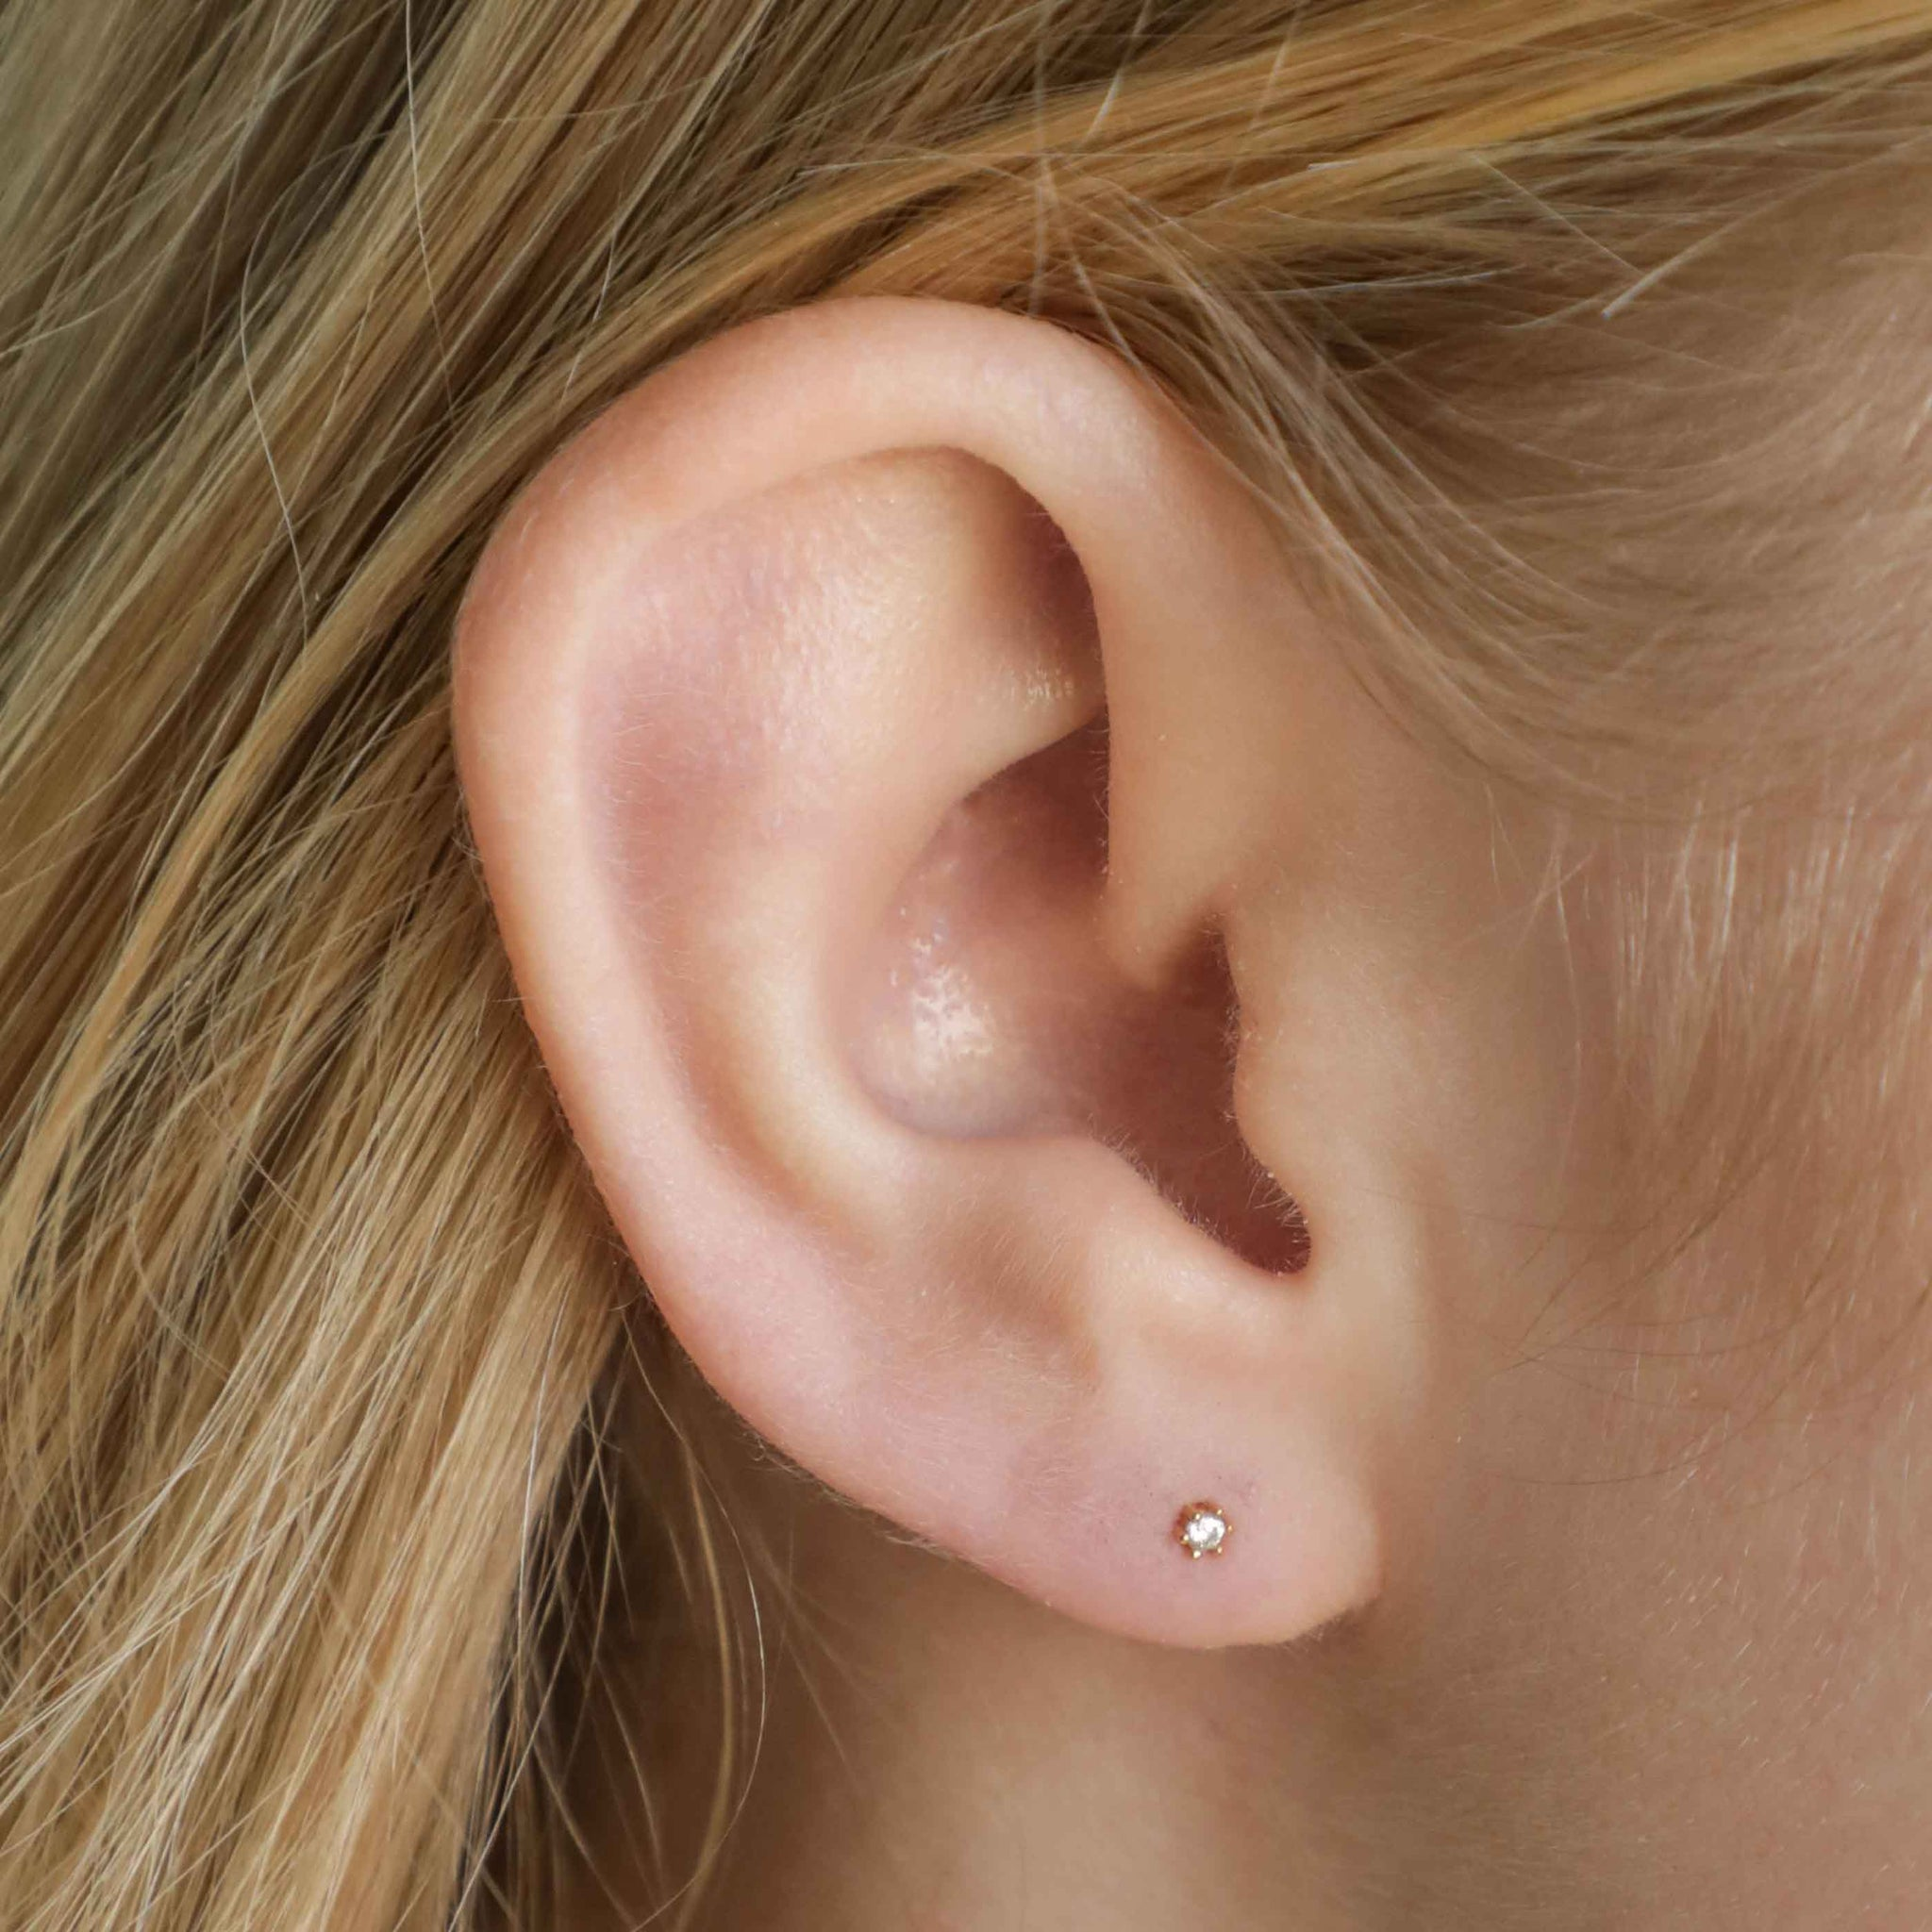 Flora Tiny Barbell in Gold worn in lobe